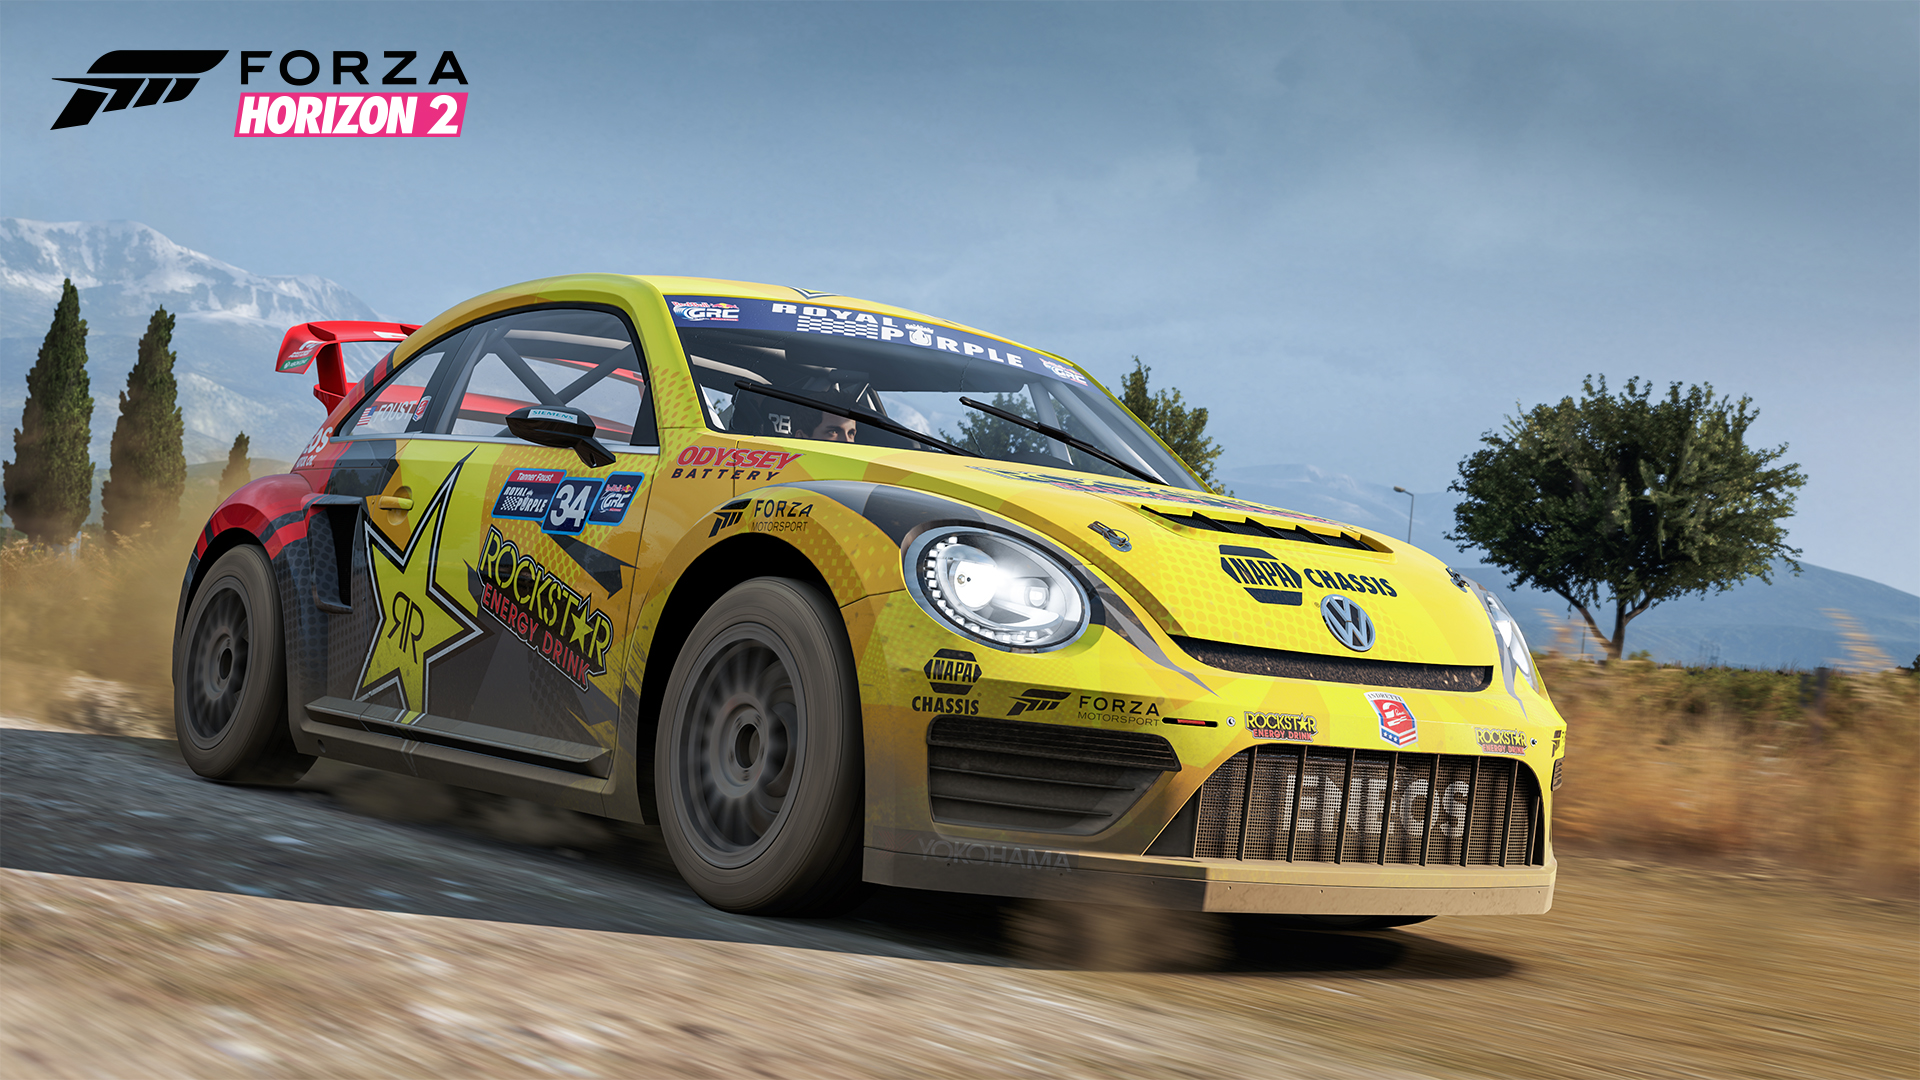 5 New Cars Available For Forza Horizon 2 On Xbox One